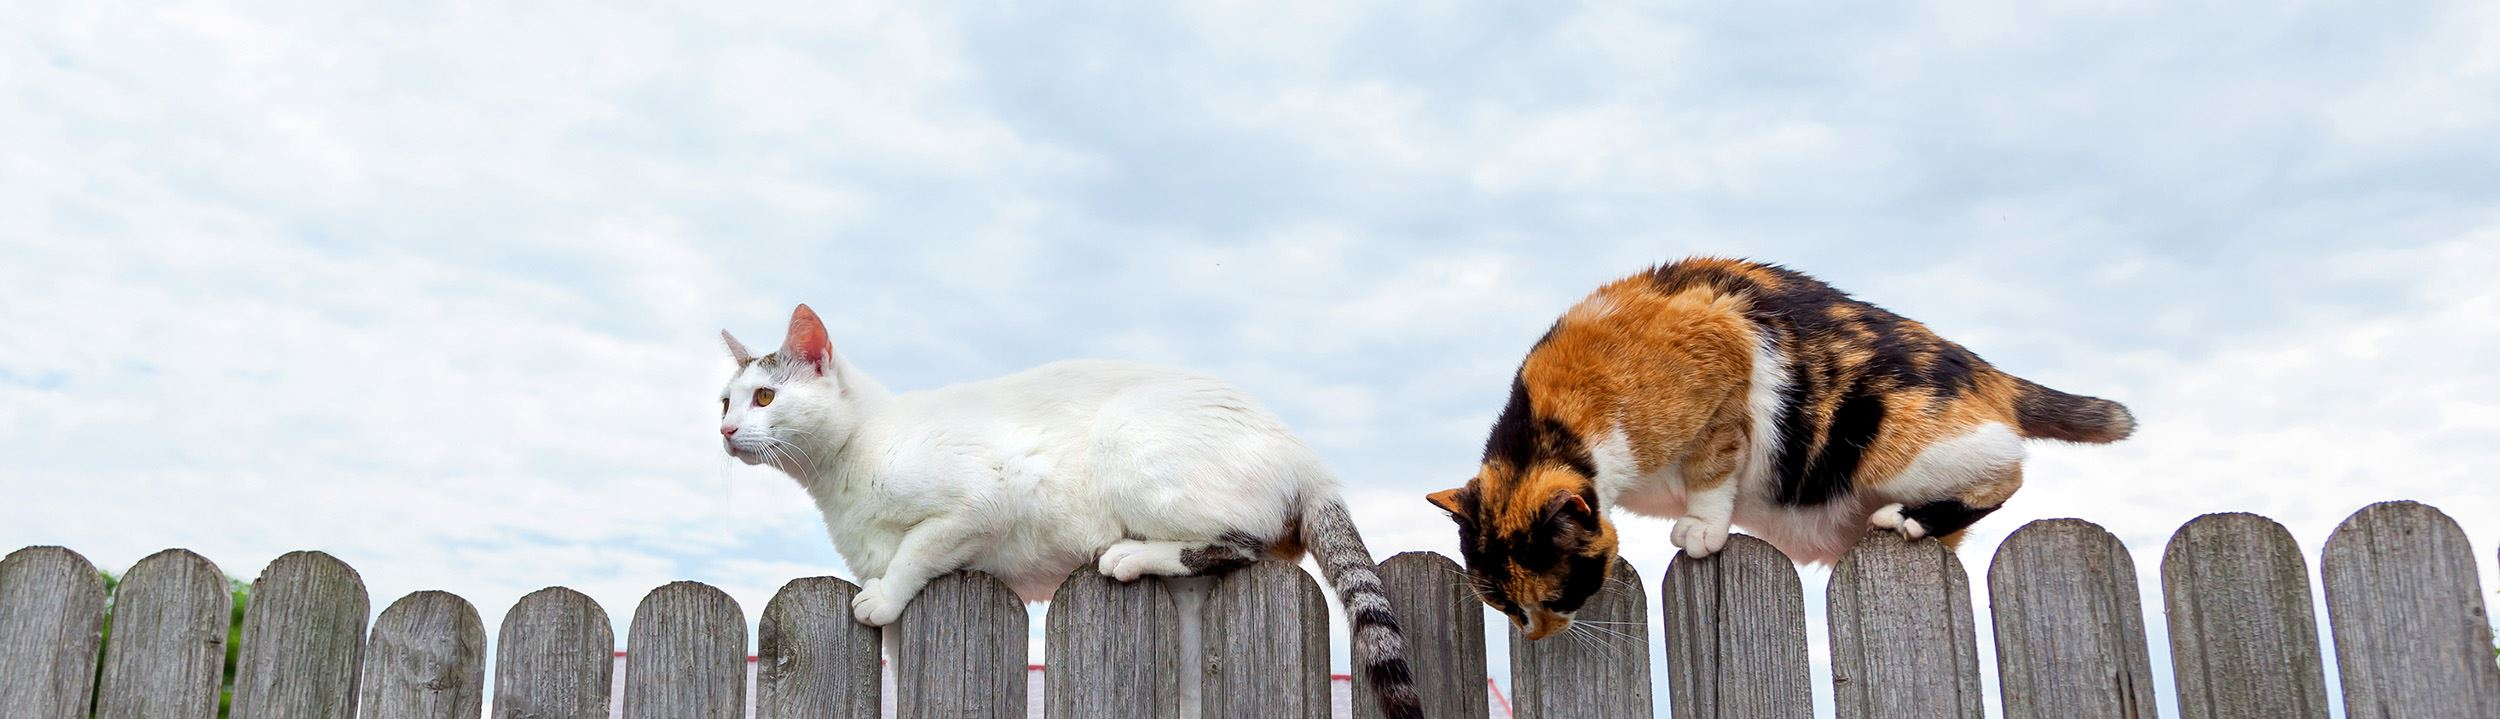 Two stray cats walking along a fence on a sunny day.